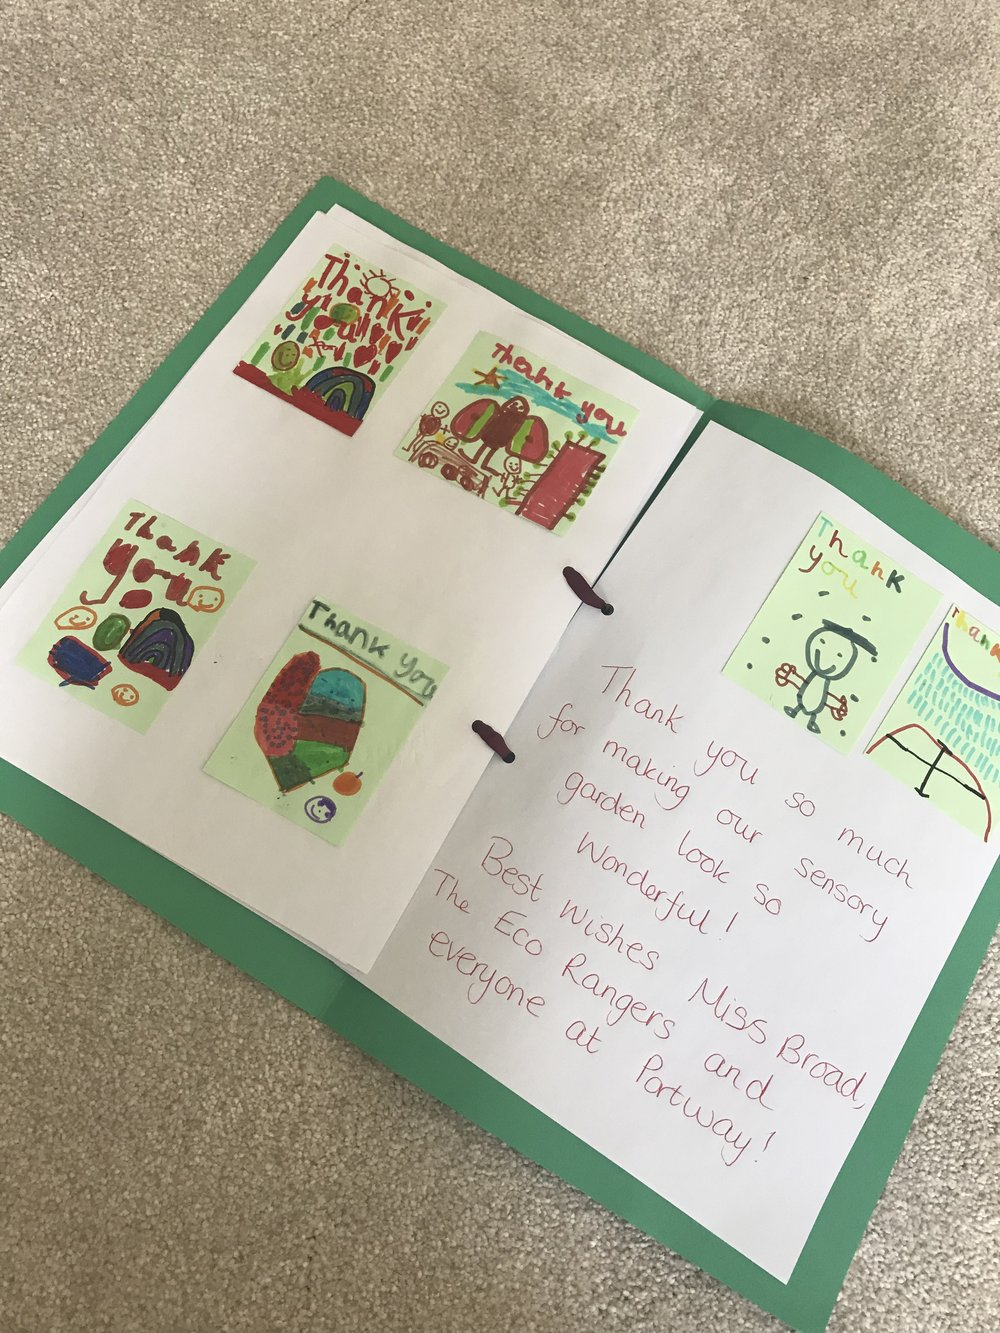 Lovely to receive this today a thankyou booklet from all the children at Portway Infant school Allestree. ADH volunteered to build a sensory garden path with all the children's painted pebbles. The builders were well looked after with a cuppa!